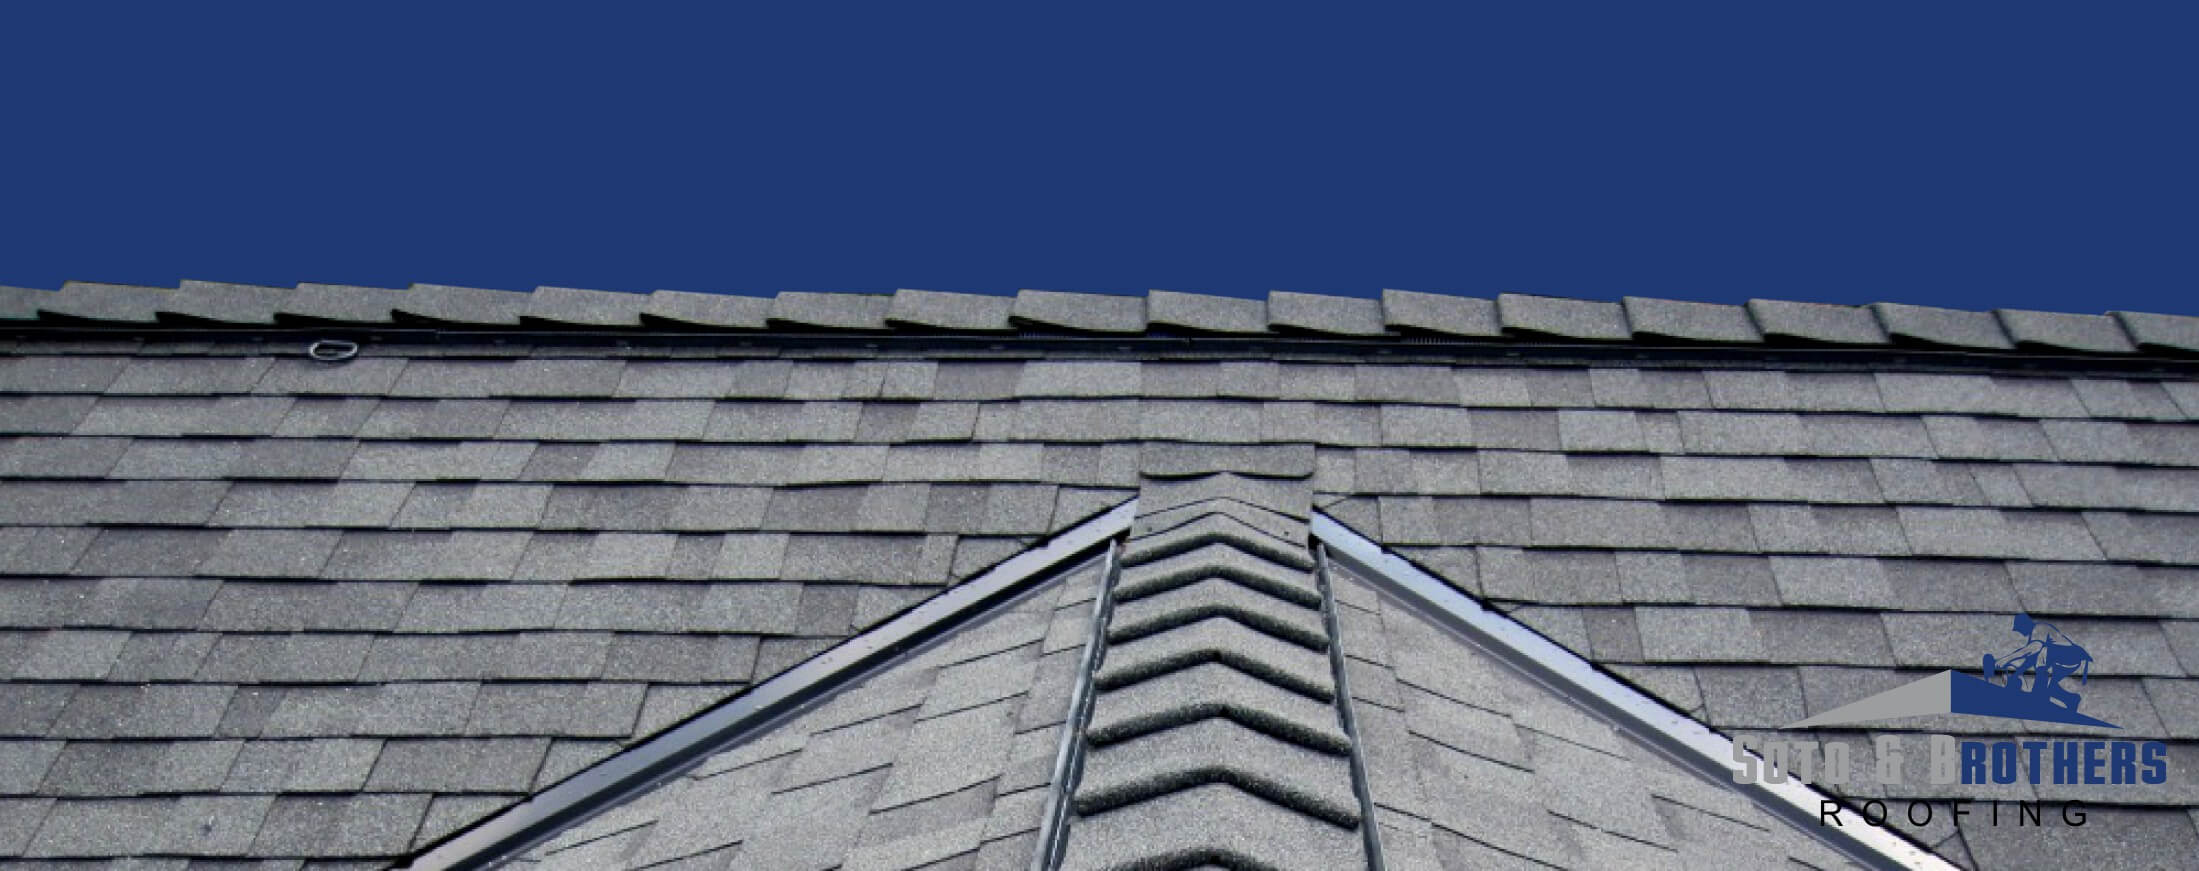 soto-roofing-washington-3